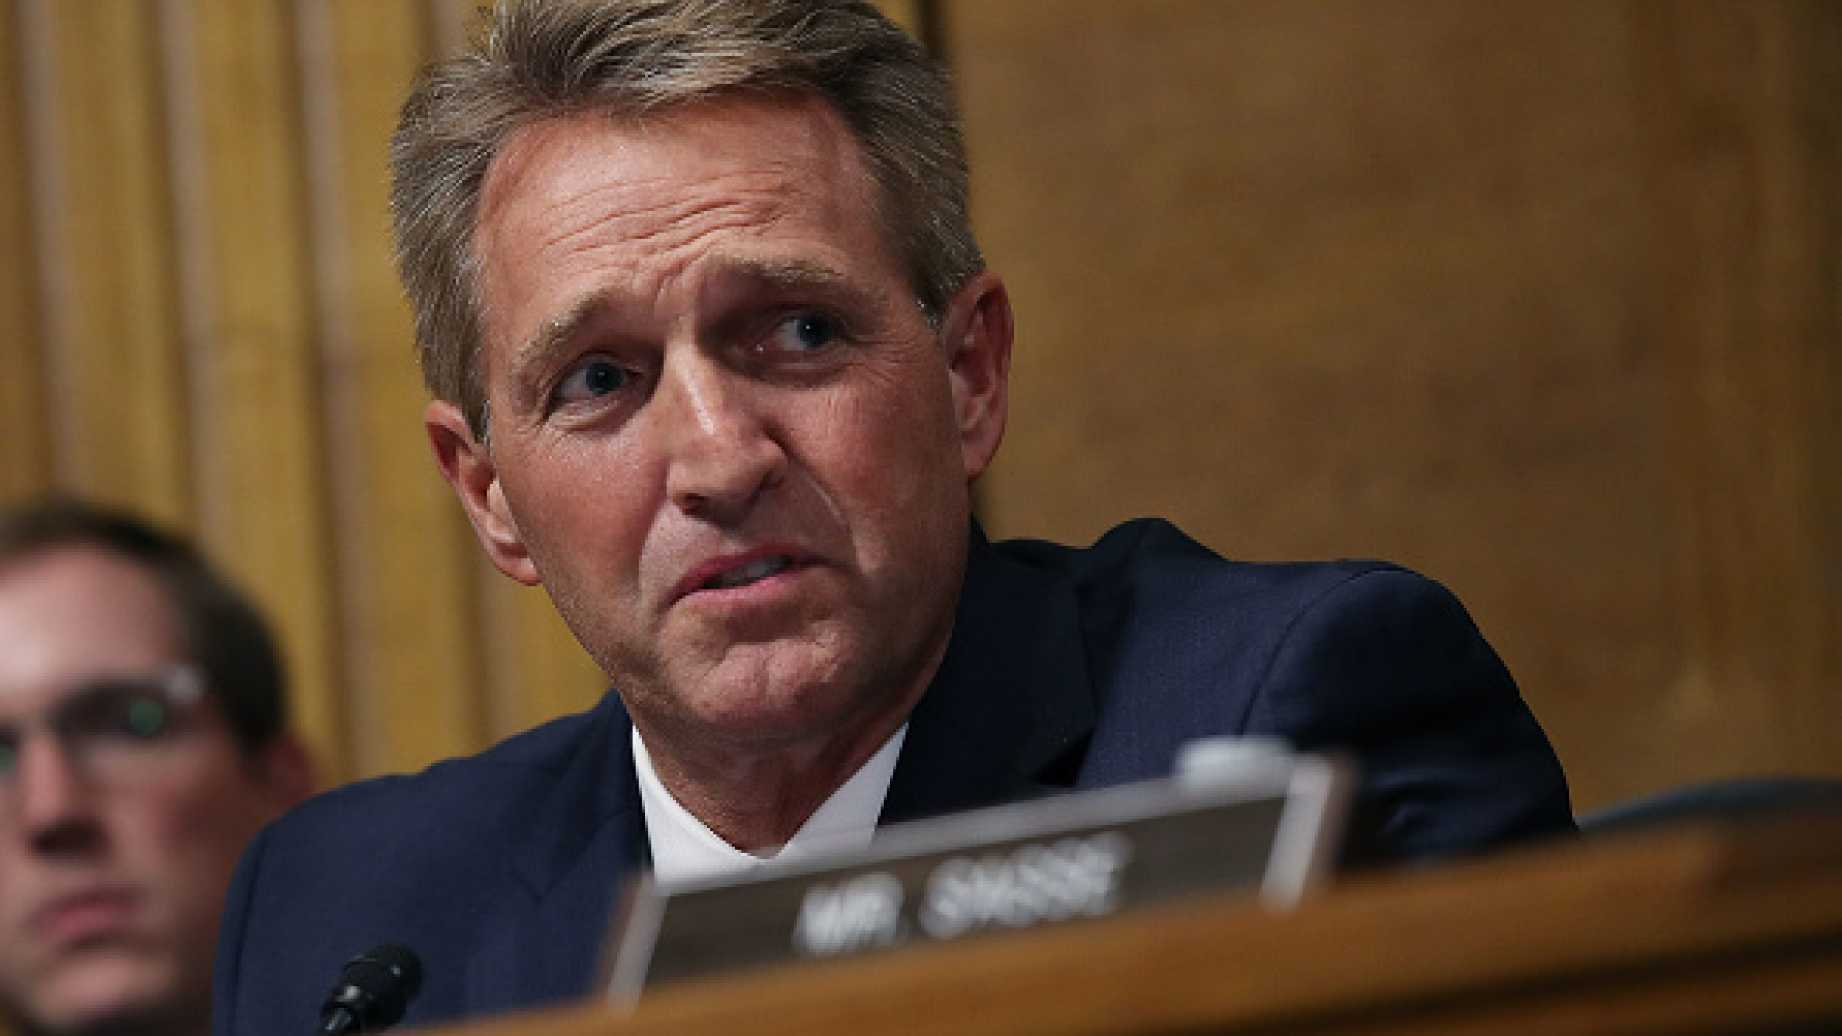 Will Jeff Flake Honor His Own Words?